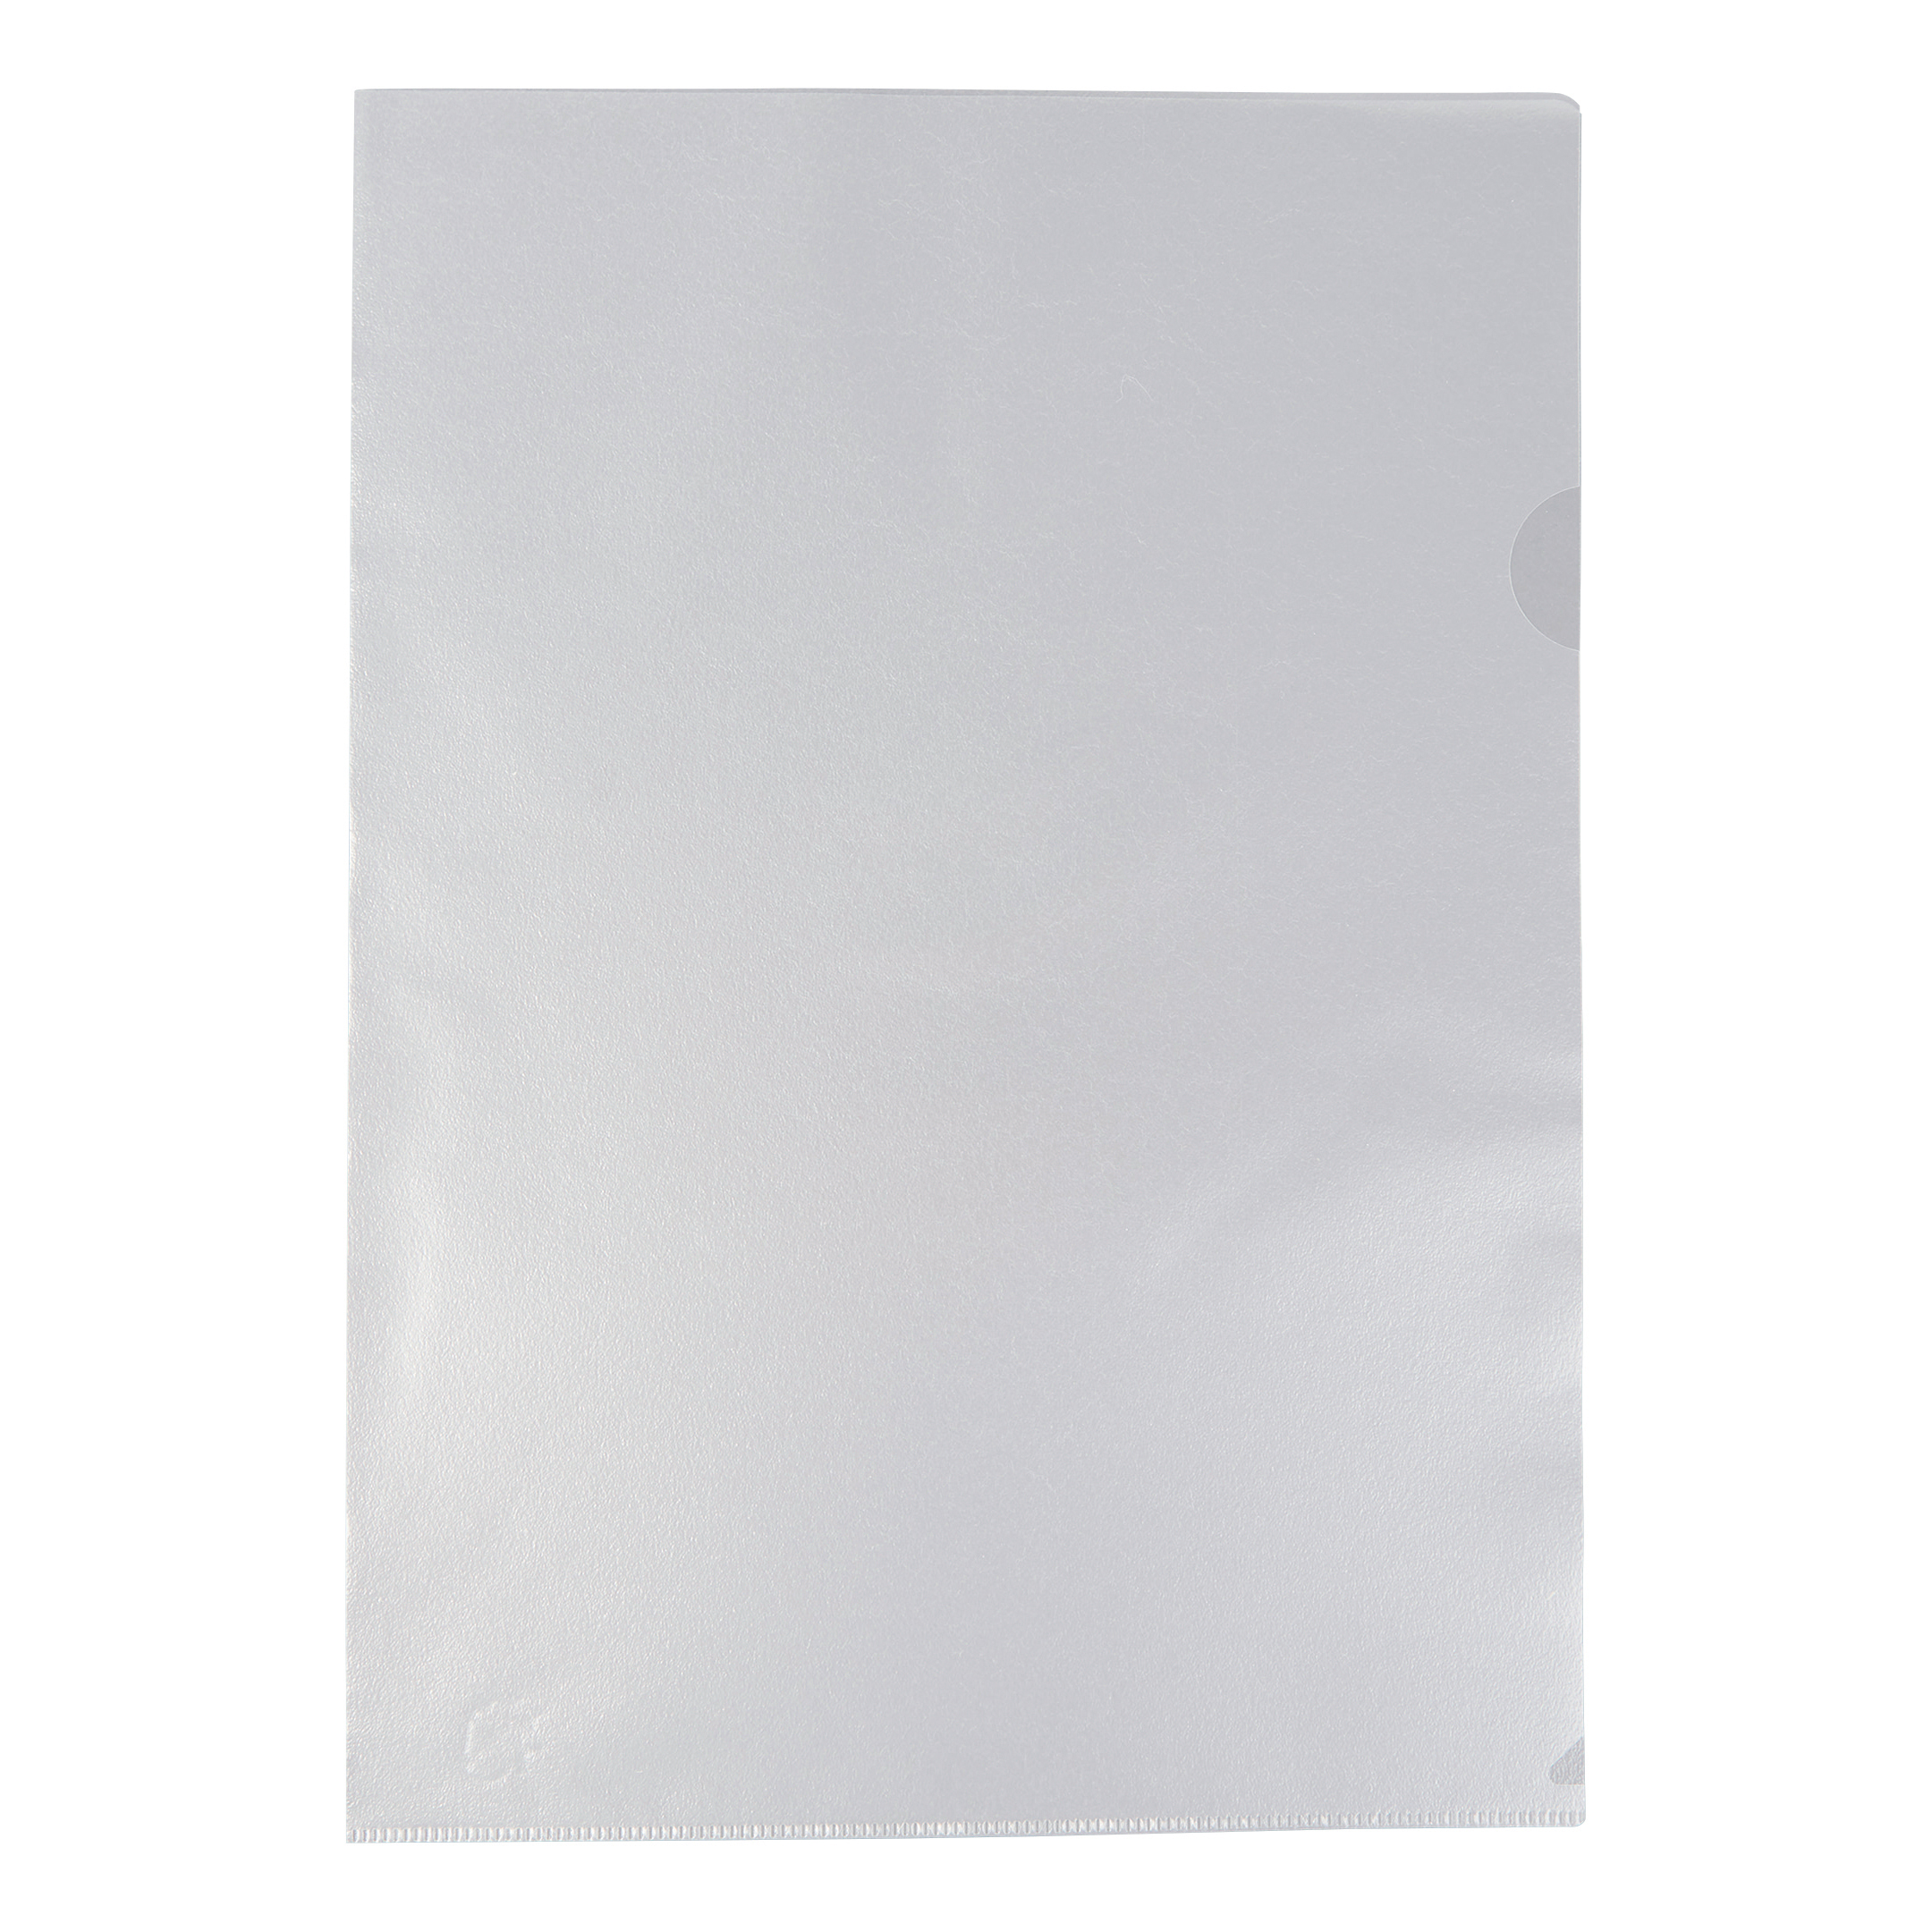 5 Star Office Folder Cut Flush Polypropylene Copy-safe Translucent 120 Micron A4 Frosted Clear [Pack 100]